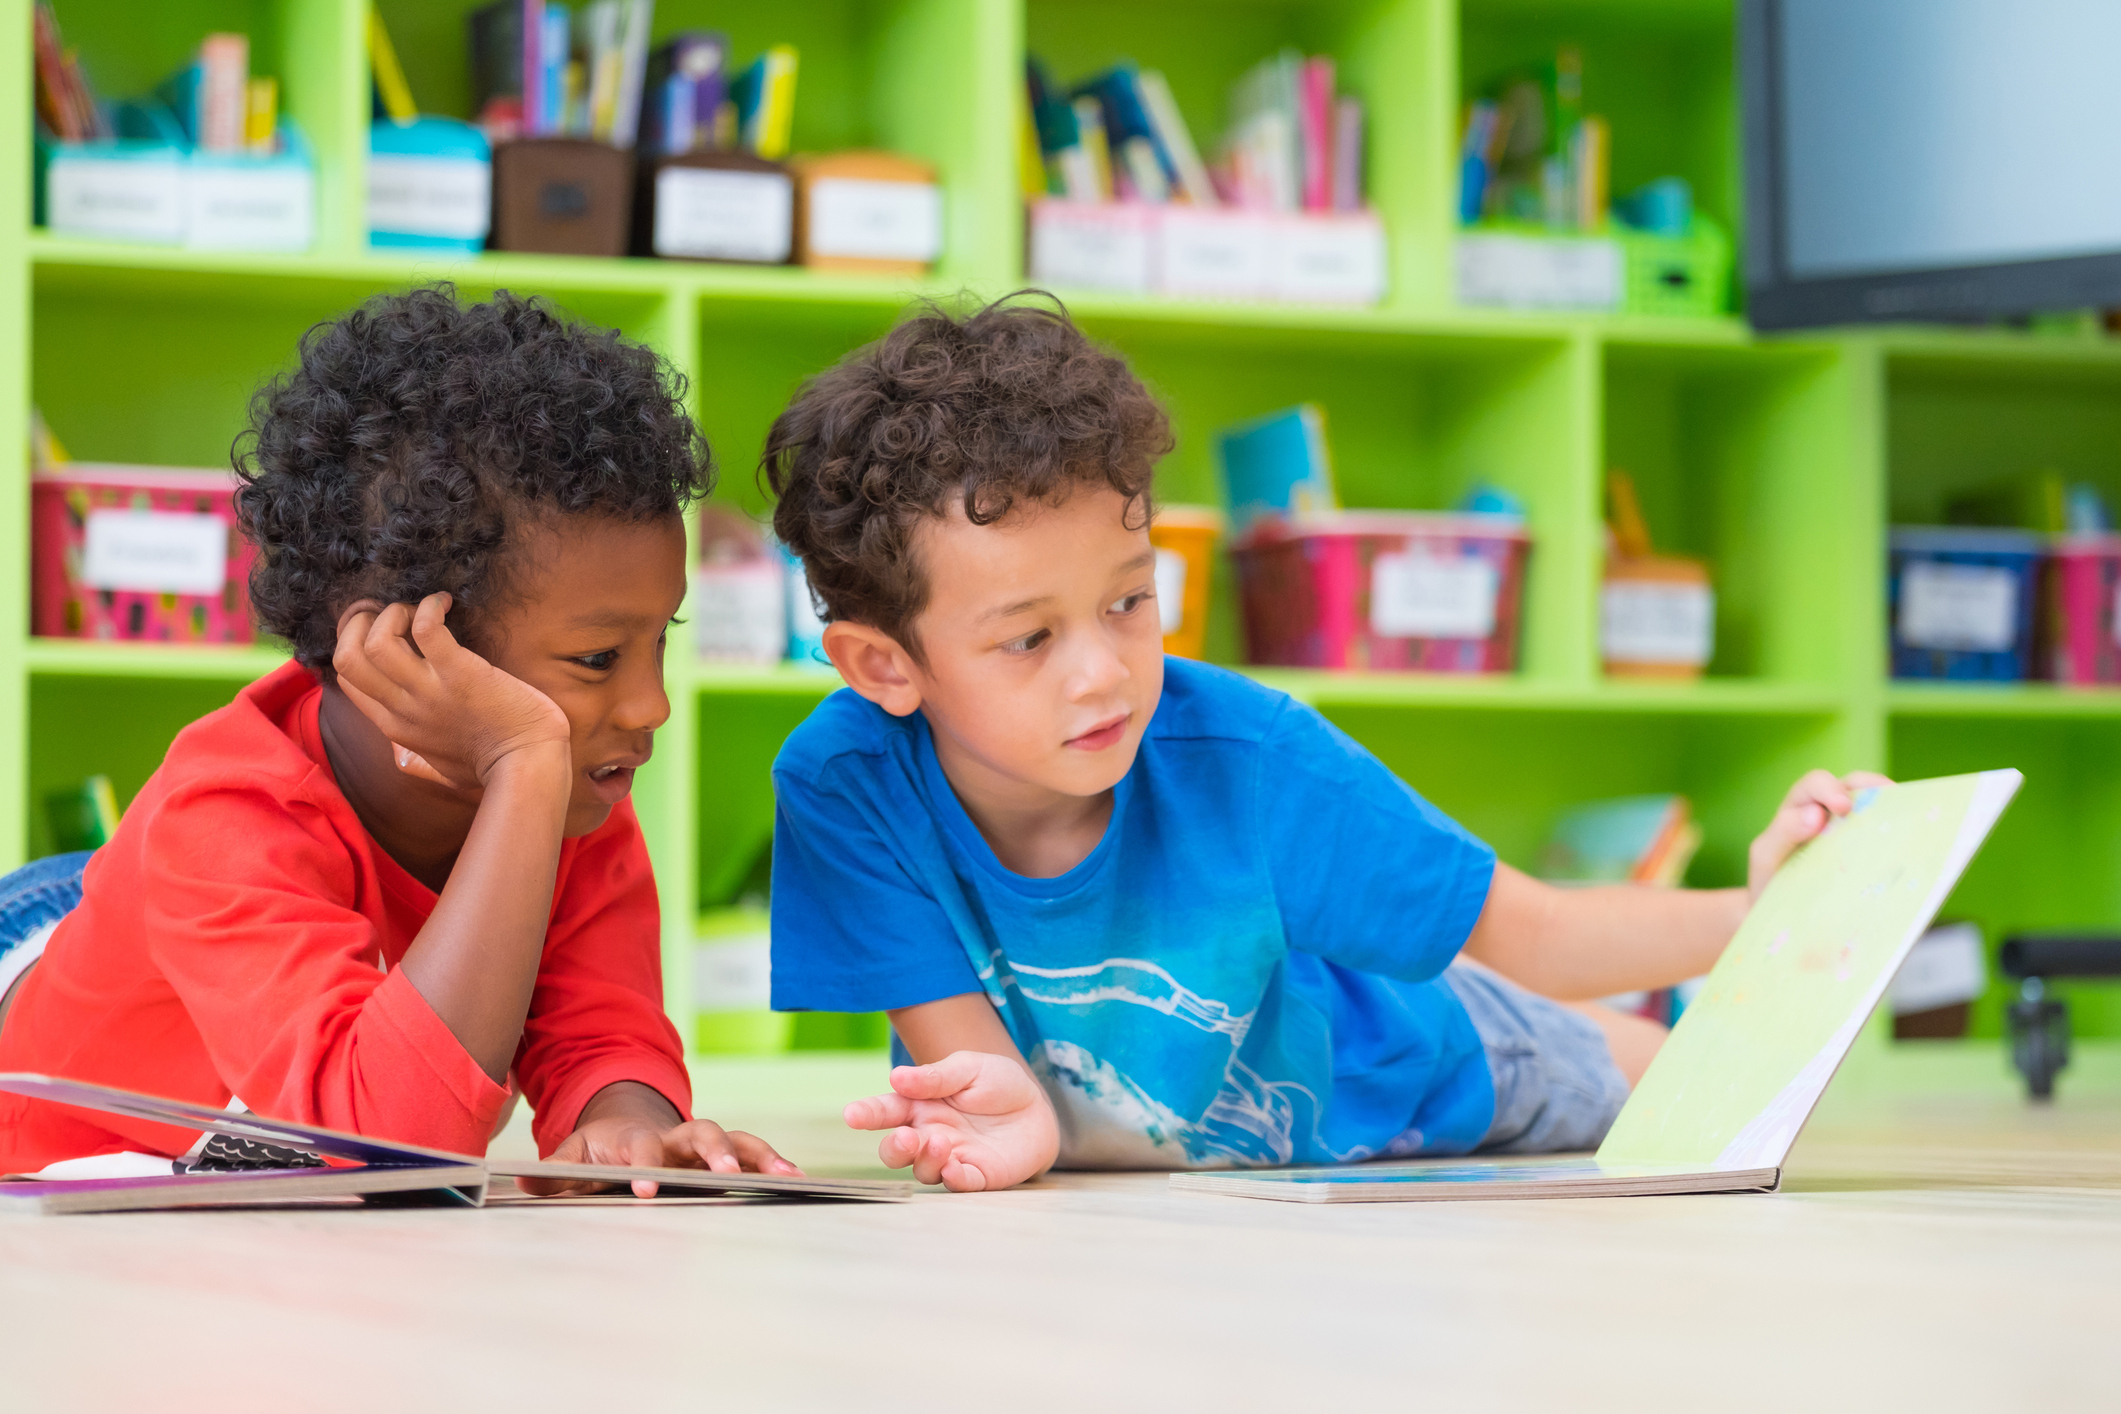 child observation study You can learn a lot about children and their behaviors by observing them in a planned way children are very interesting, if you are a teacher, day care worker, or a parent you can definitely gain knowledge about children's behavior in general or a specific child by doing a simple child observation and asking yourself specific questions about.